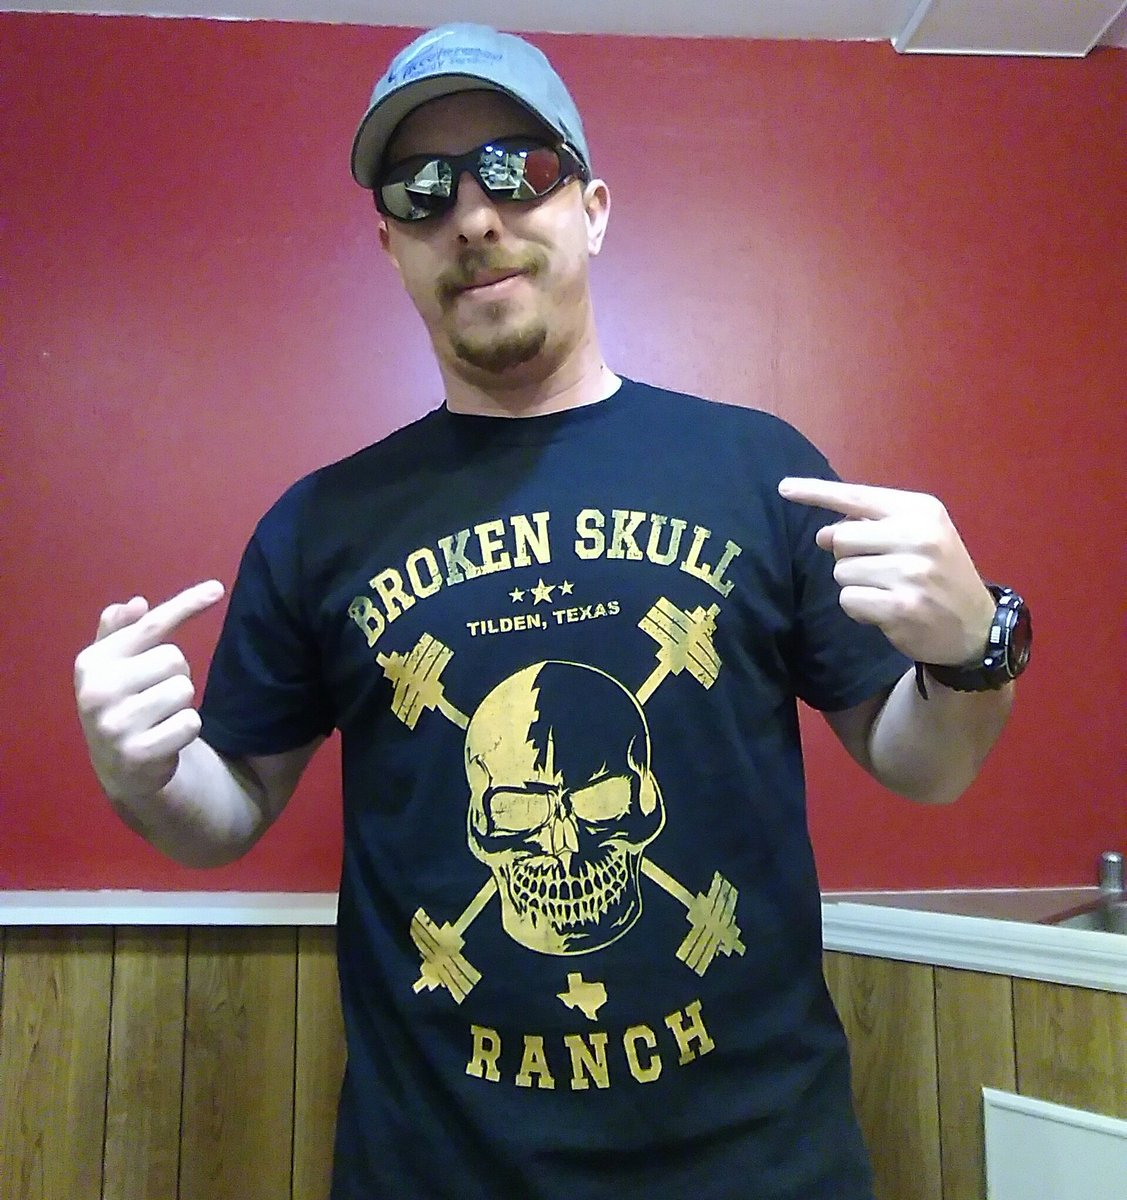 Hell Yeah!RT @shawnmurch89: Thanks for the badass T-shirt.  Definitely will get more. @OneHourTees @steveaustinBSR https://t.co/XJ6el9MCc0